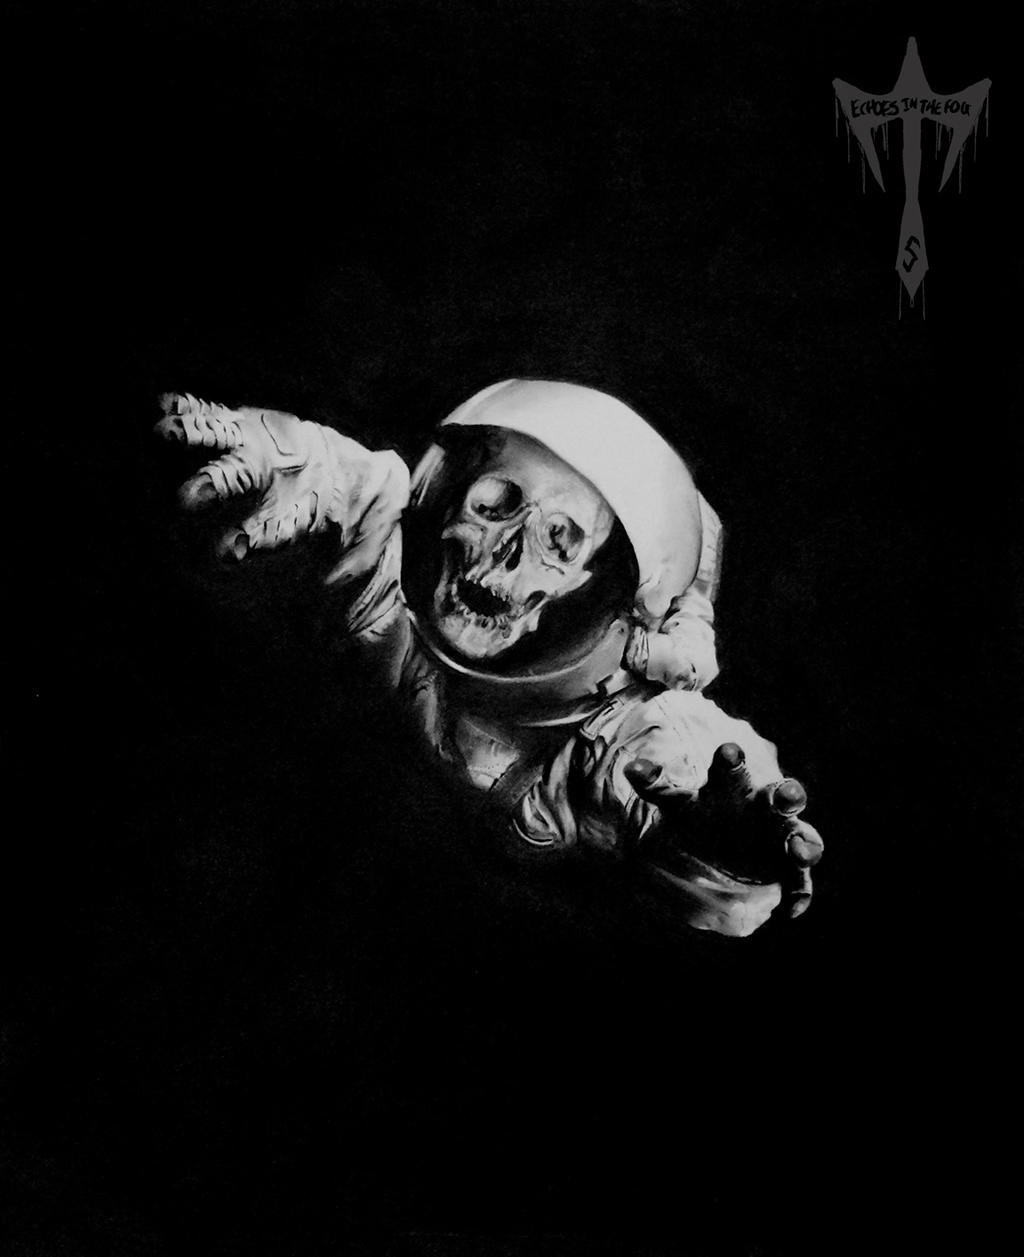 Dead Astronaut Charcoal Drawing By Echoesinthefog On